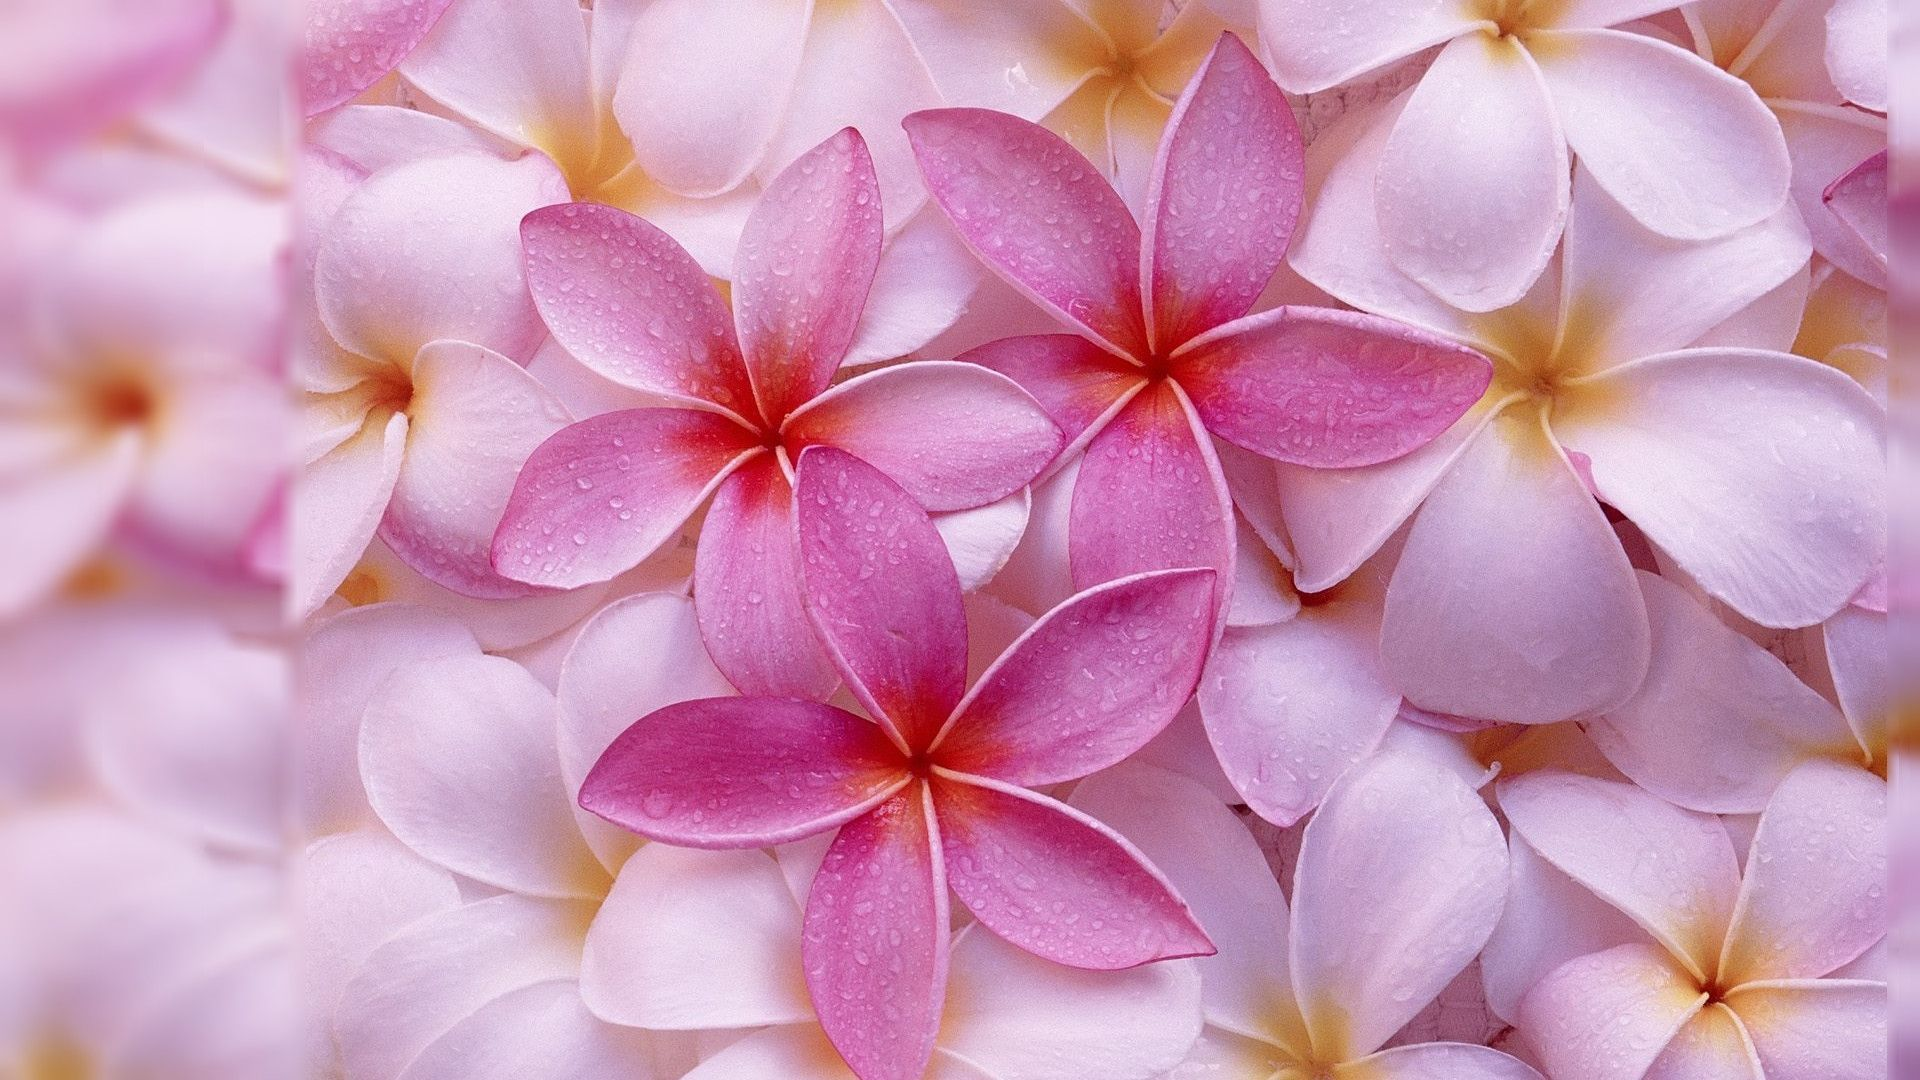 Pink Flowers Hd Wallpapers Top Free Pink Flowers Hd Backgrounds